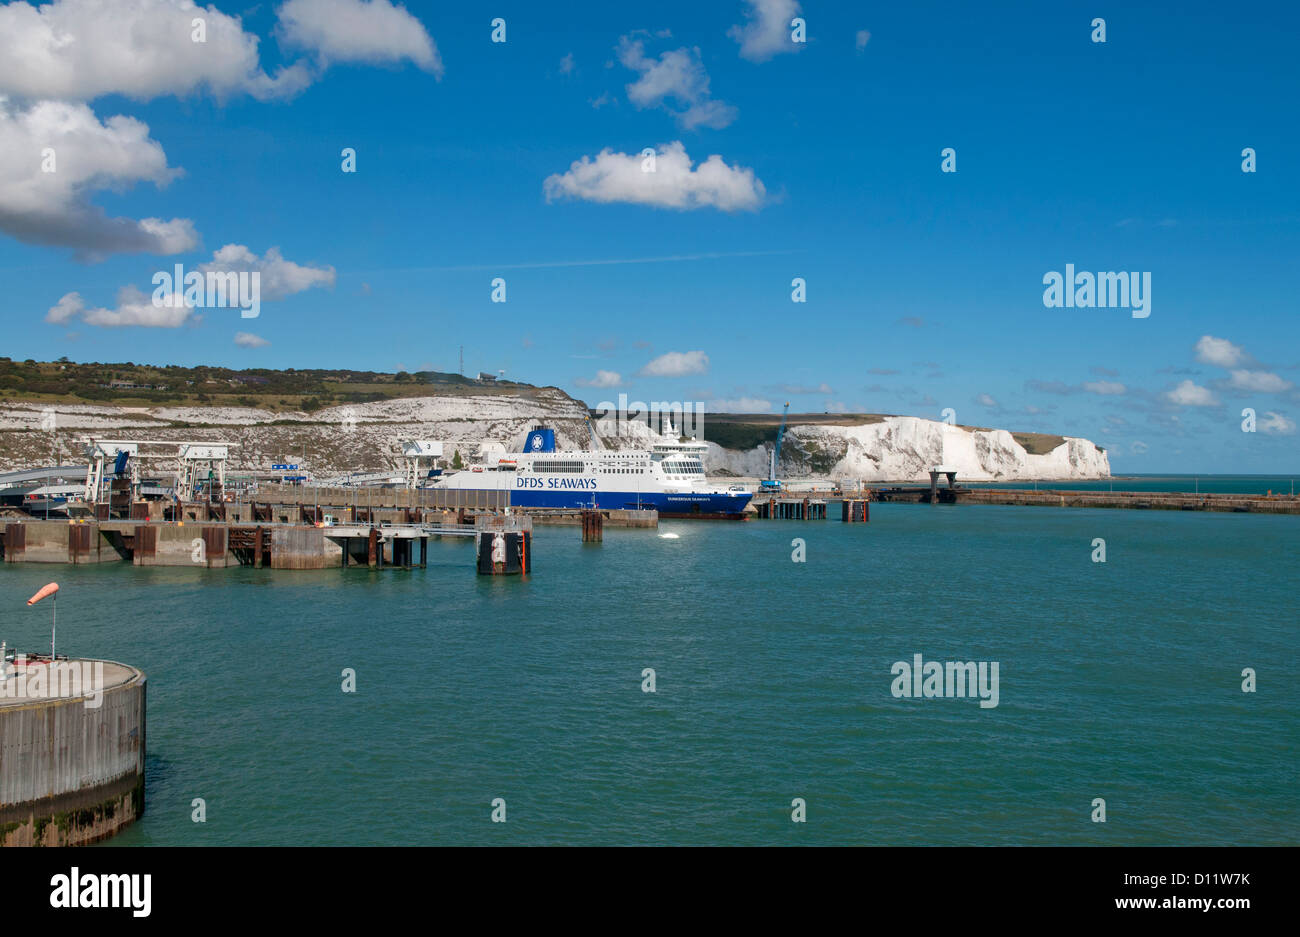 DFDS Seaways Car ferries in the port of Dover in Kent, on the south coast of England Stock Photo